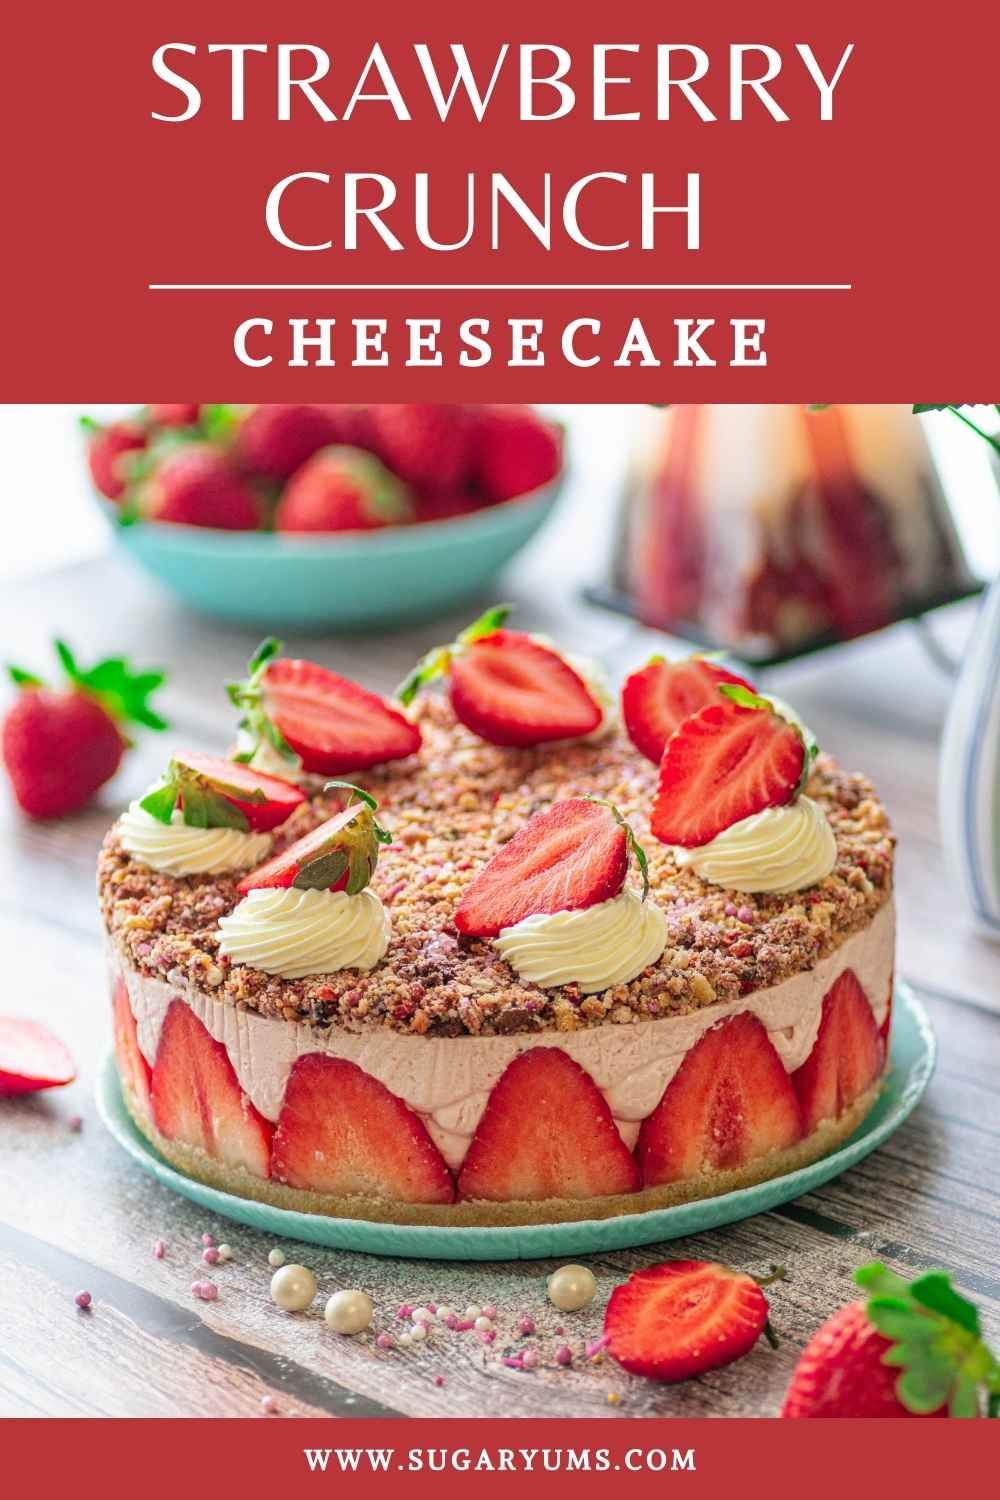 Strawberry crunch cheesecake cake on plate with writing on top